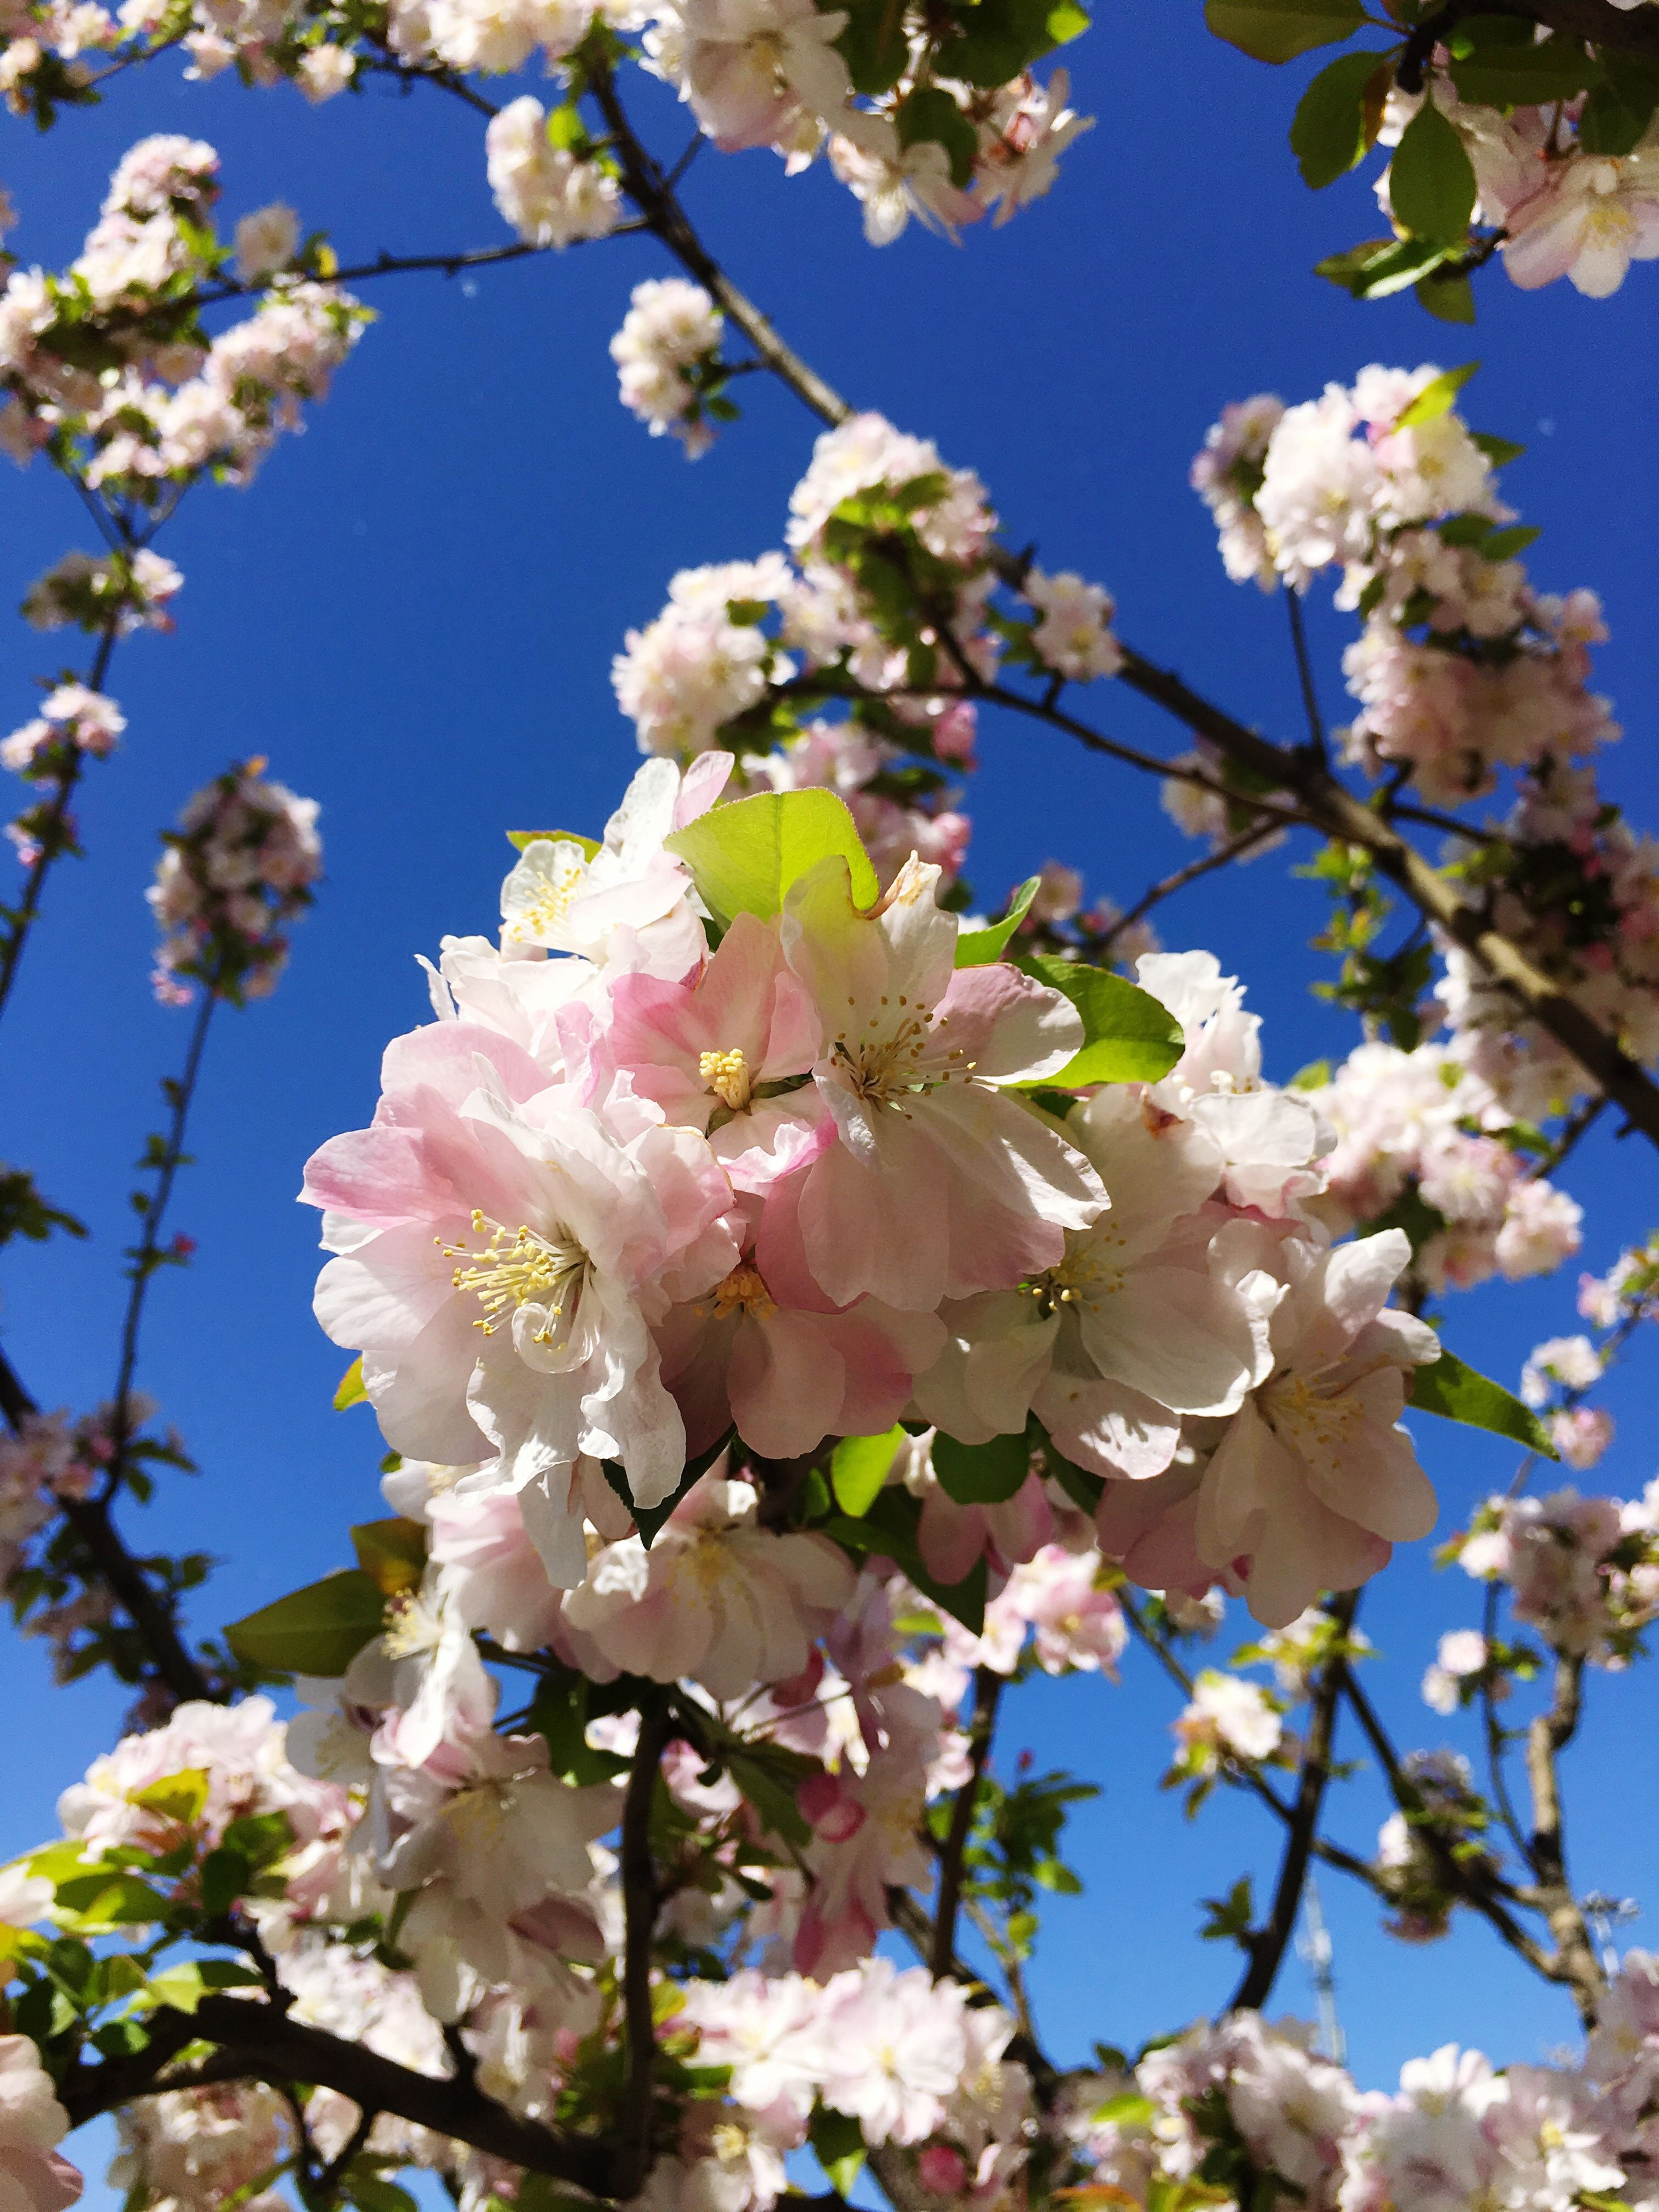 flower, low angle view, branch, freshness, tree, growth, fragility, clear sky, blossom, beauty in nature, cherry blossom, cherry tree, nature, fruit tree, blue, blooming, in bloom, springtime, pink color, sky